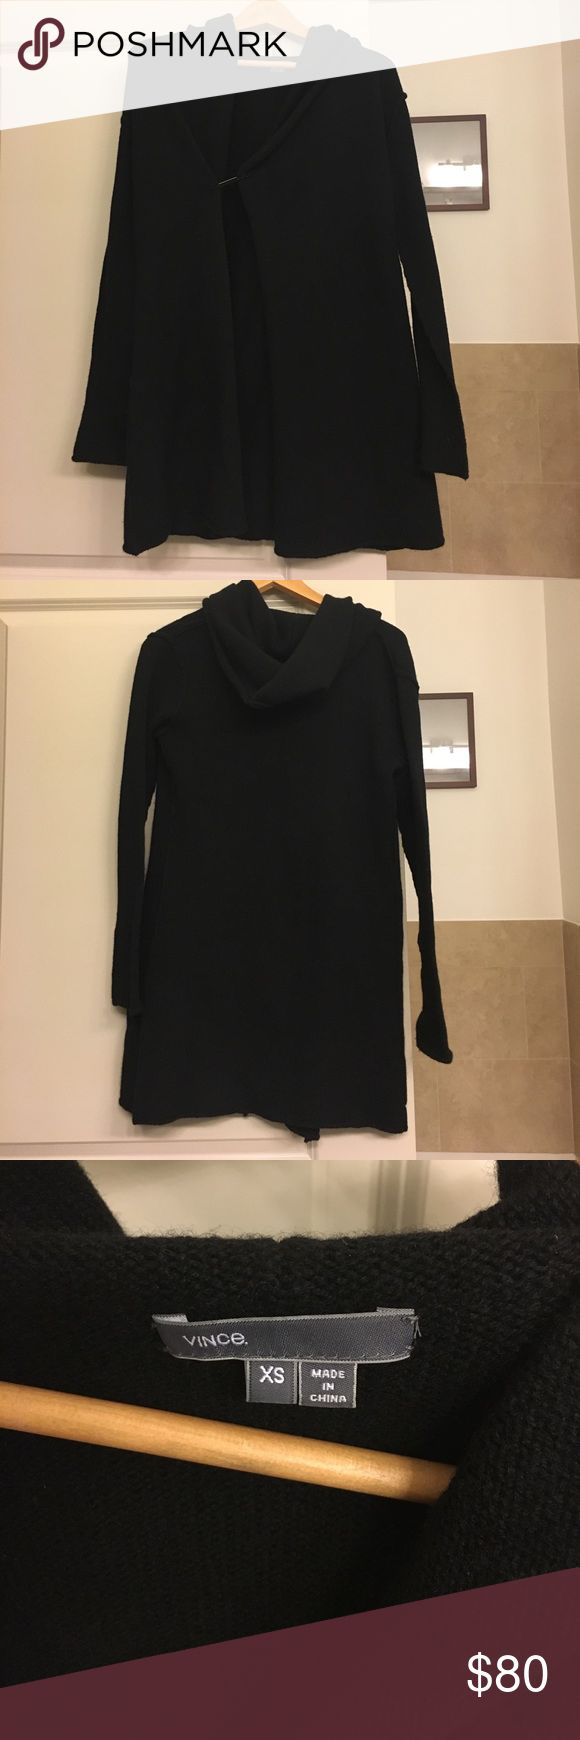 "🔥SALE🔥Vince ""Sophie"" long hooded cardigan Vince cardigan with hoodie and functional safety pin design. Medium weight. Worn less than a handful of times. Great condition, no flaws. I'm letting this piece go because I have a SKINGRAFT hoodie that I love. This was a very expensive Vince sweater that I hardly touched. Length 30"". Shoulder to shoulder seam across the back is 15"". Vince Sweaters Cardigans"